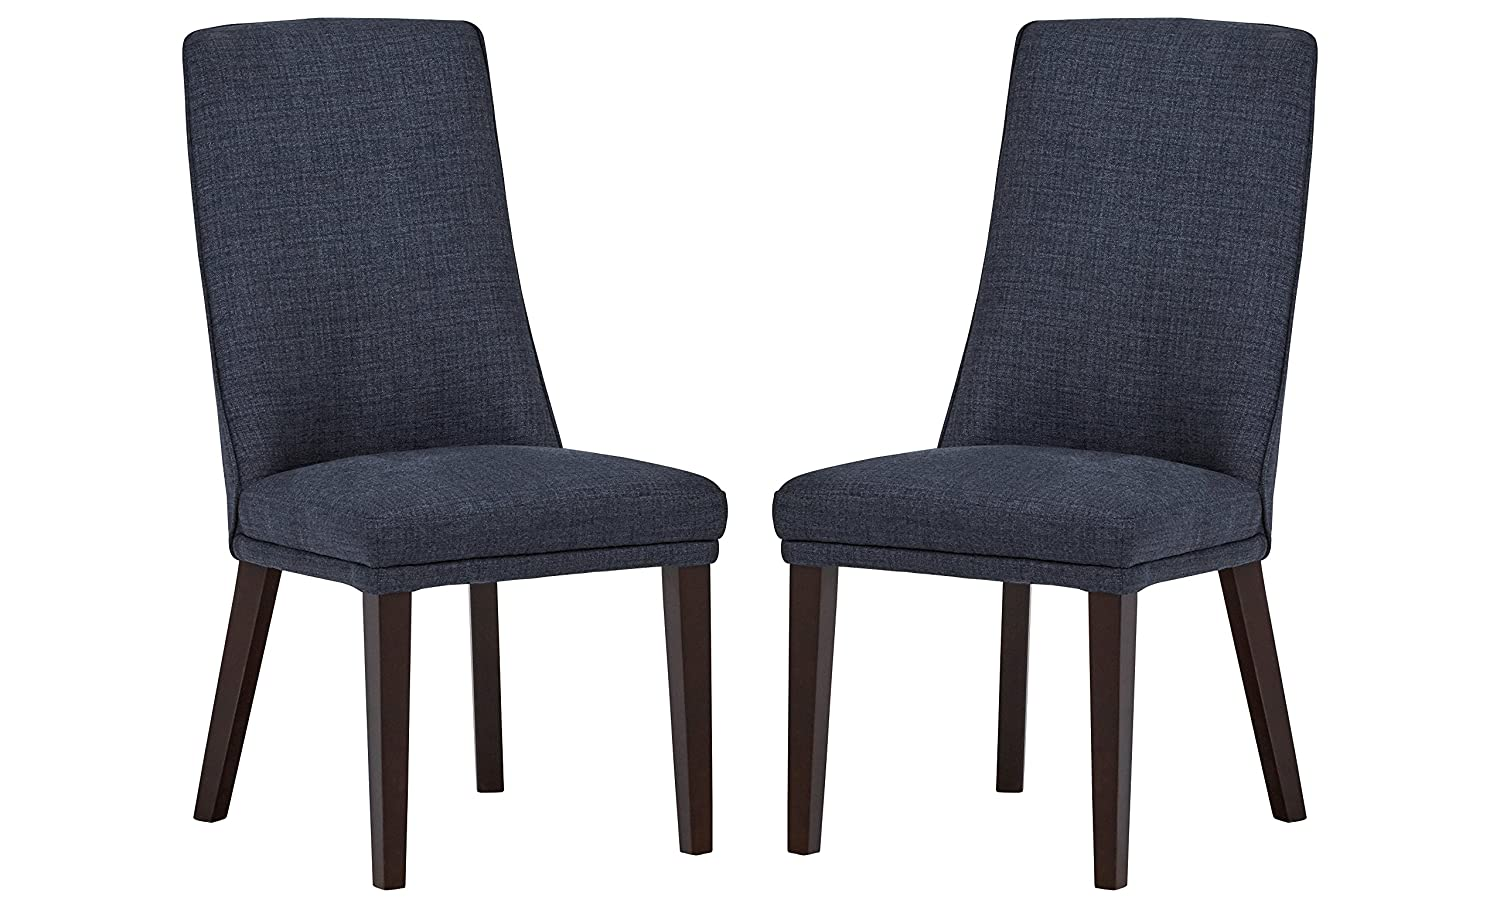 Stone & Beam High-Back Dining Chairs, 38'H, Set of 2, Navy 38H Kuka Y1306#-2pc-N